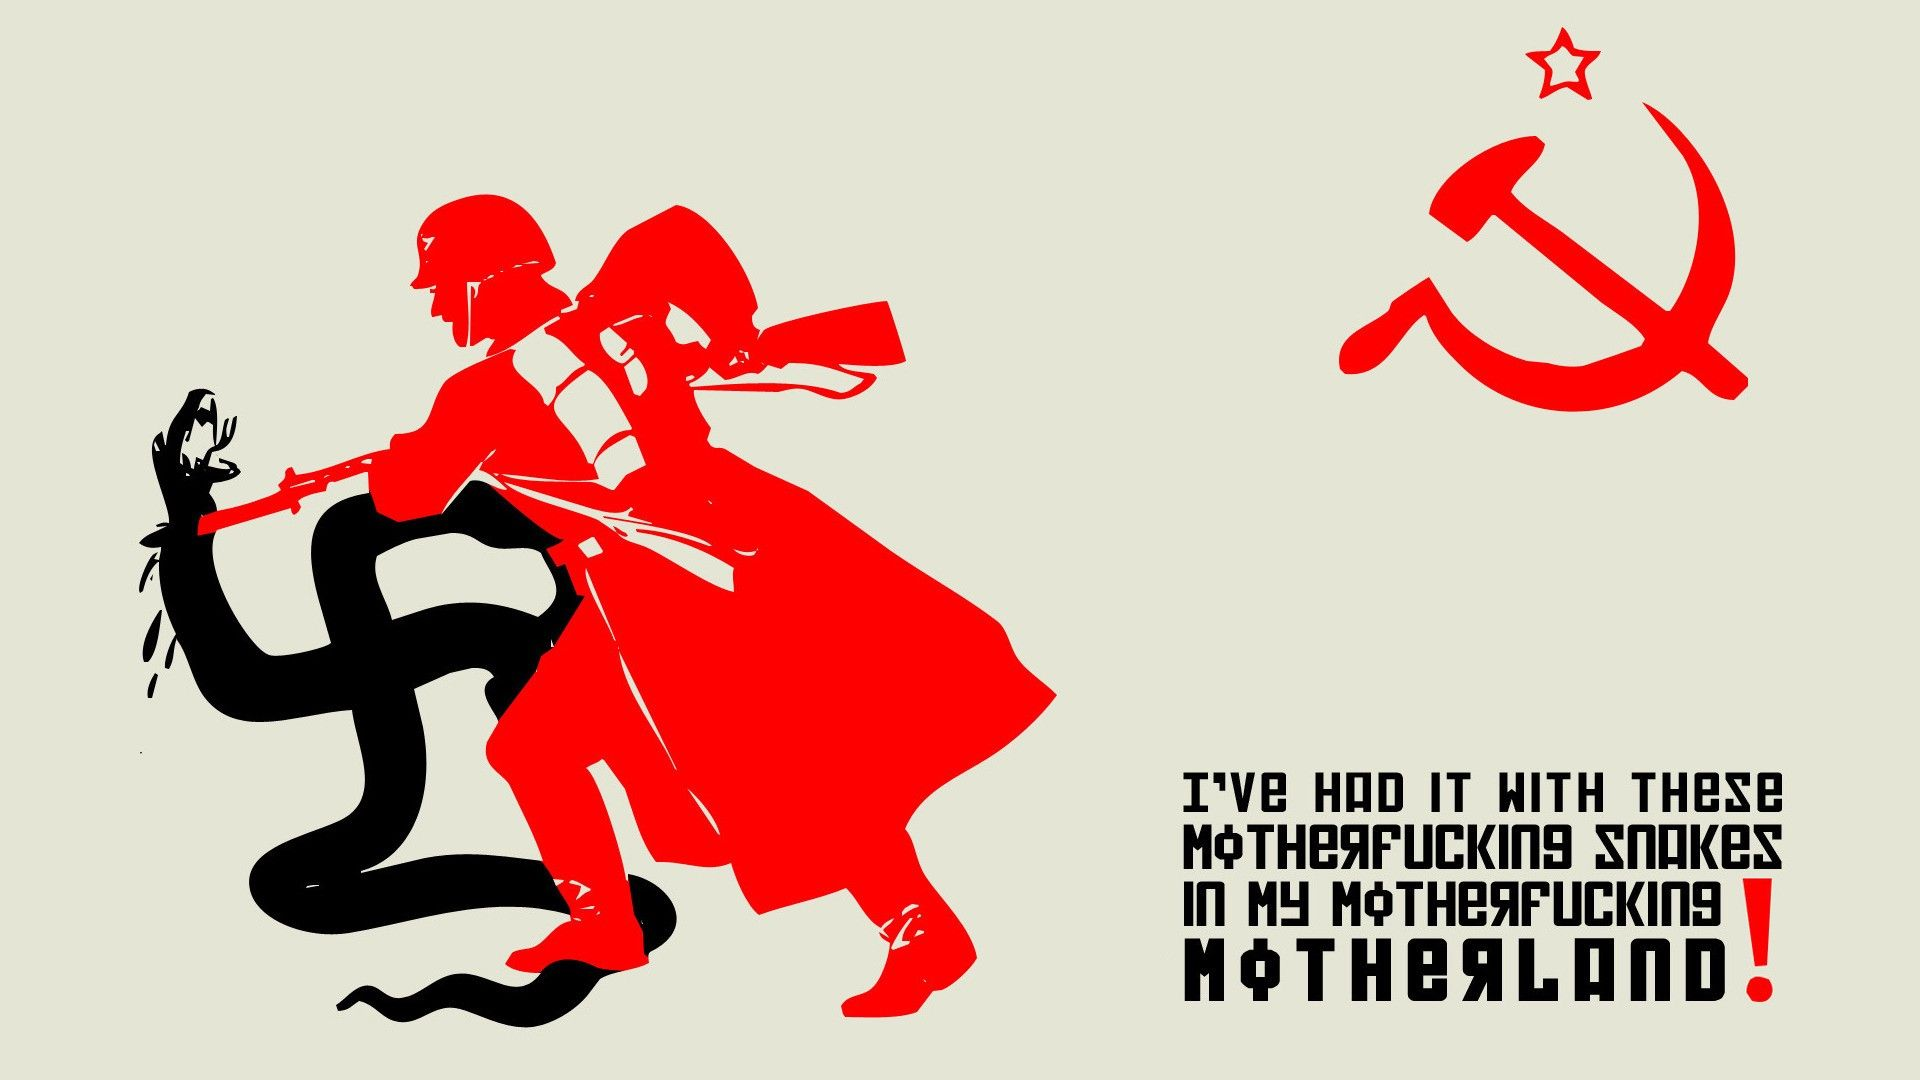 Political Wallpaper Hammer And Sickle Communist Wallpaper Hammer and sickle hd wallpaper